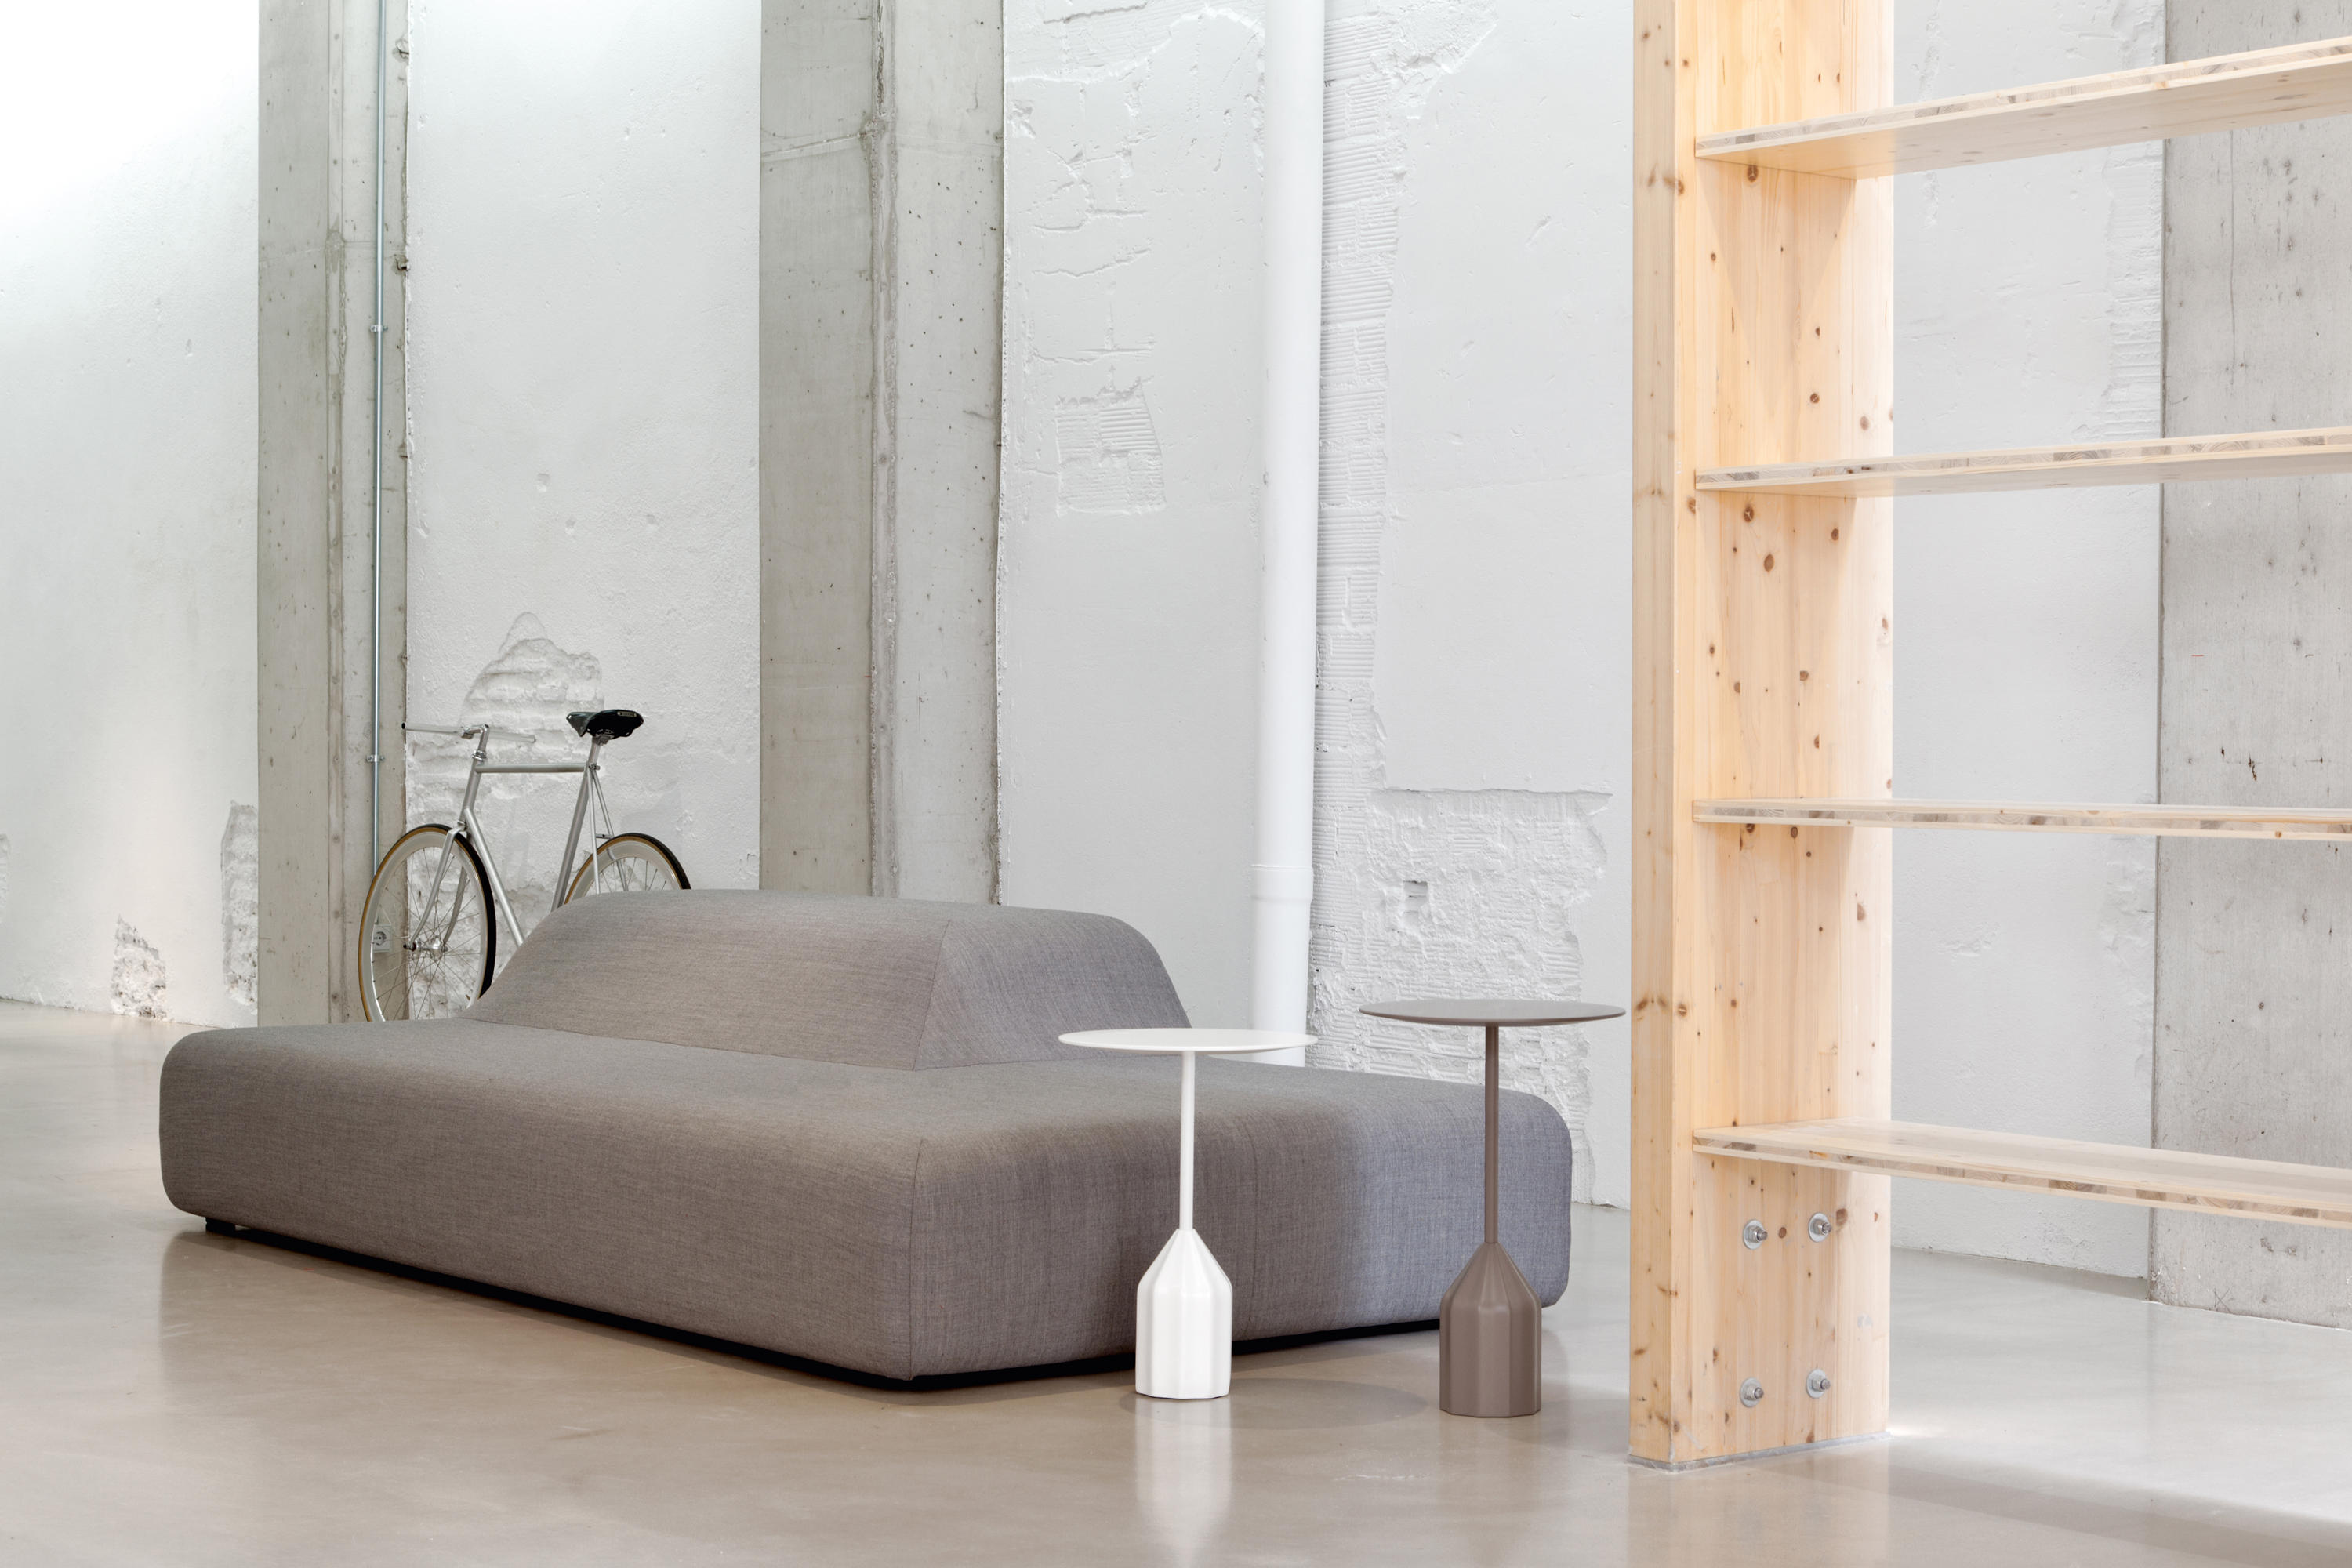 mini sofa chairs memphis bed season - poufs from viccarbe   architonic